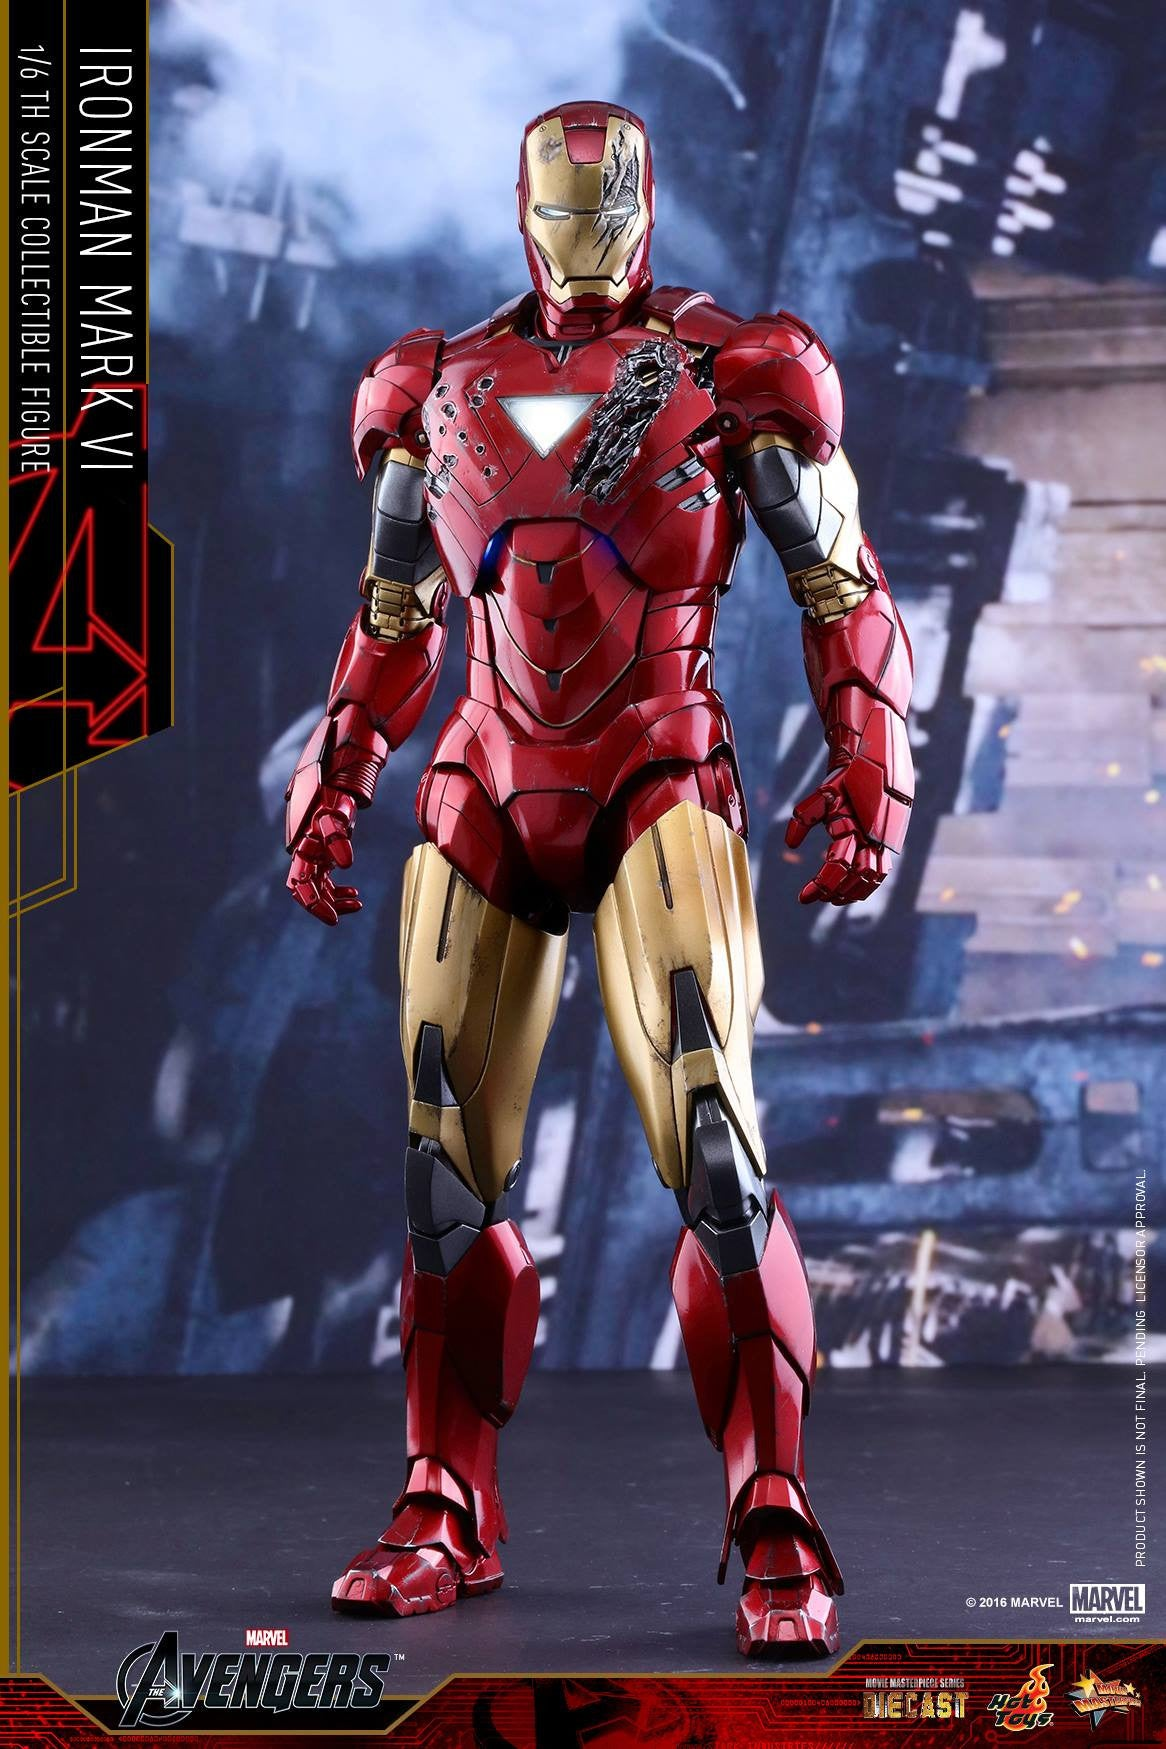 Hot Toys - MMS378D17 - The Avengers - Iron Man Mark VI (DIECAST) (Normal Edition) - Marvelous Toys - 14